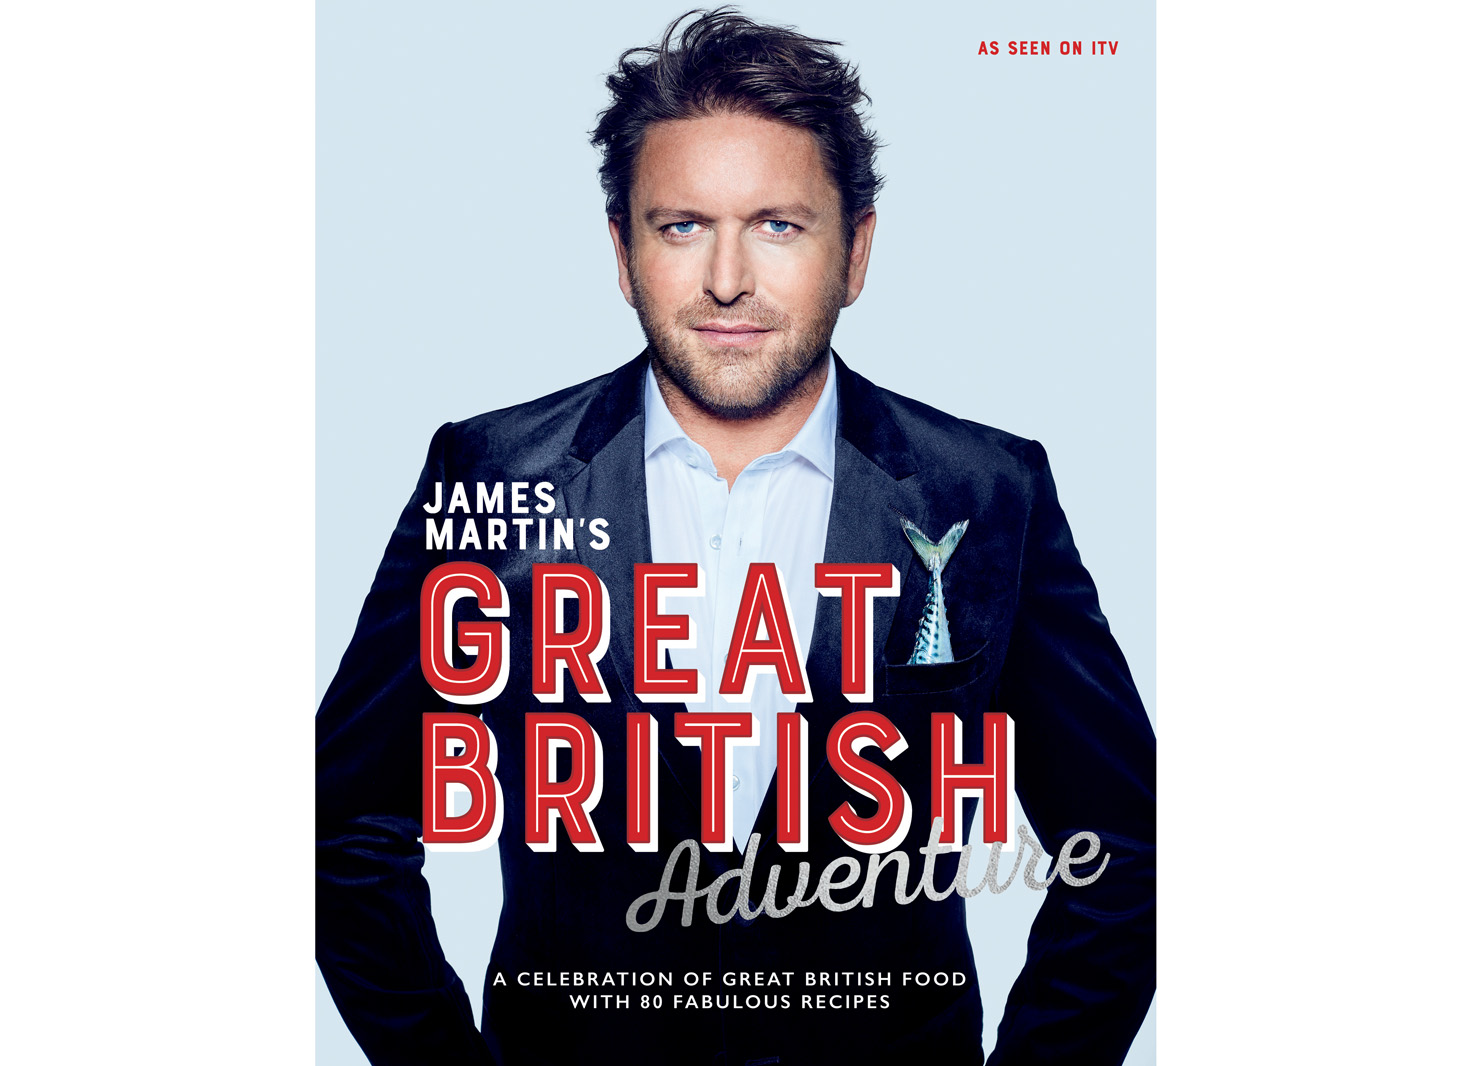 Book cover of James Martin's Great British Adventure